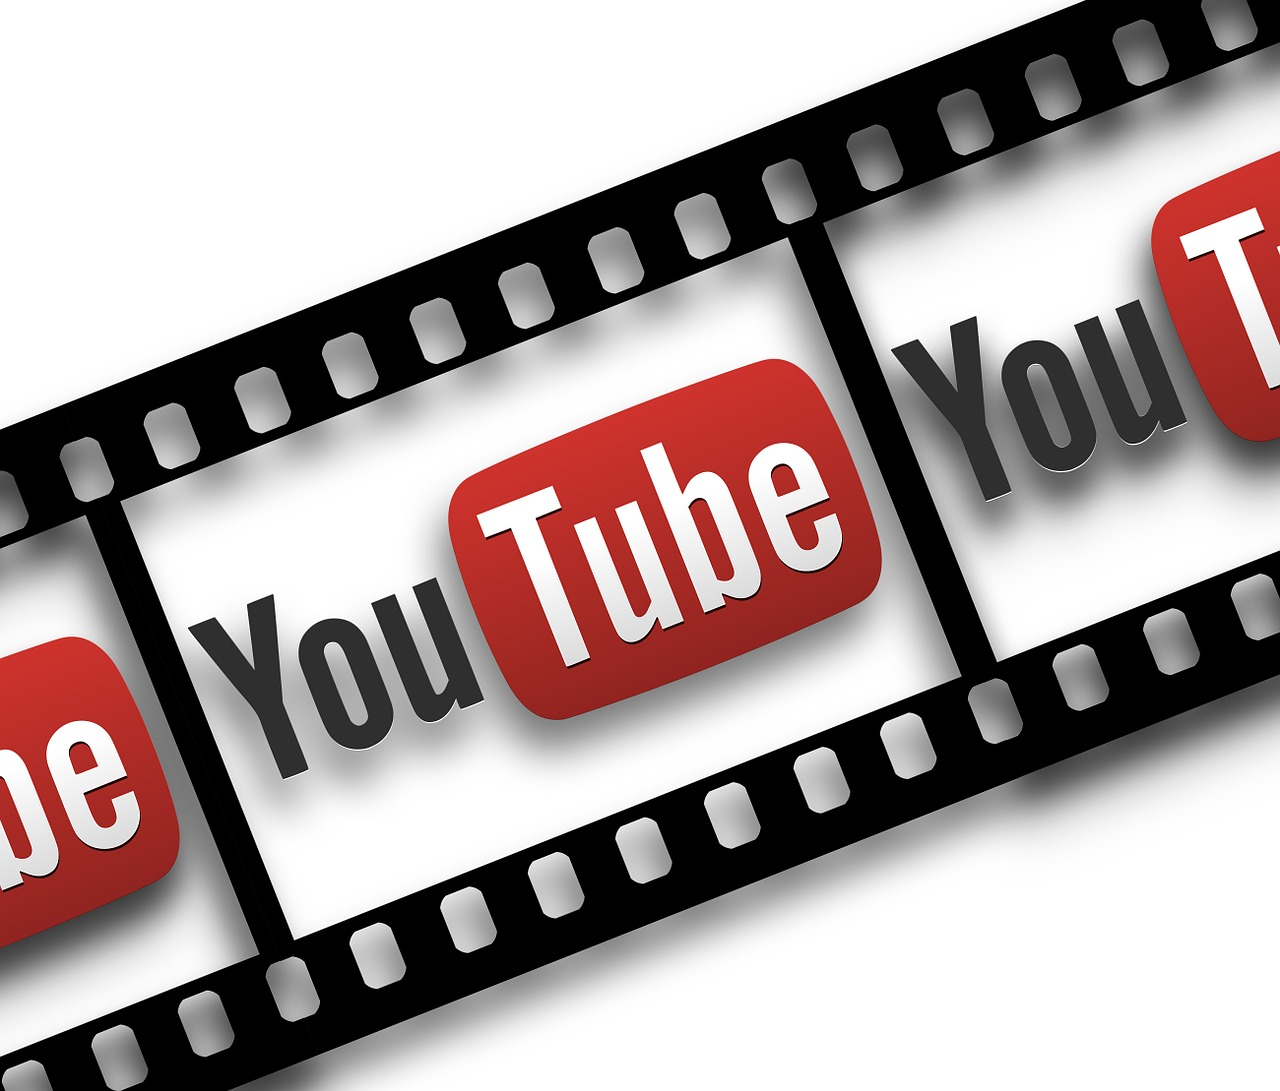 What are the advantages of using YouTube for your business?